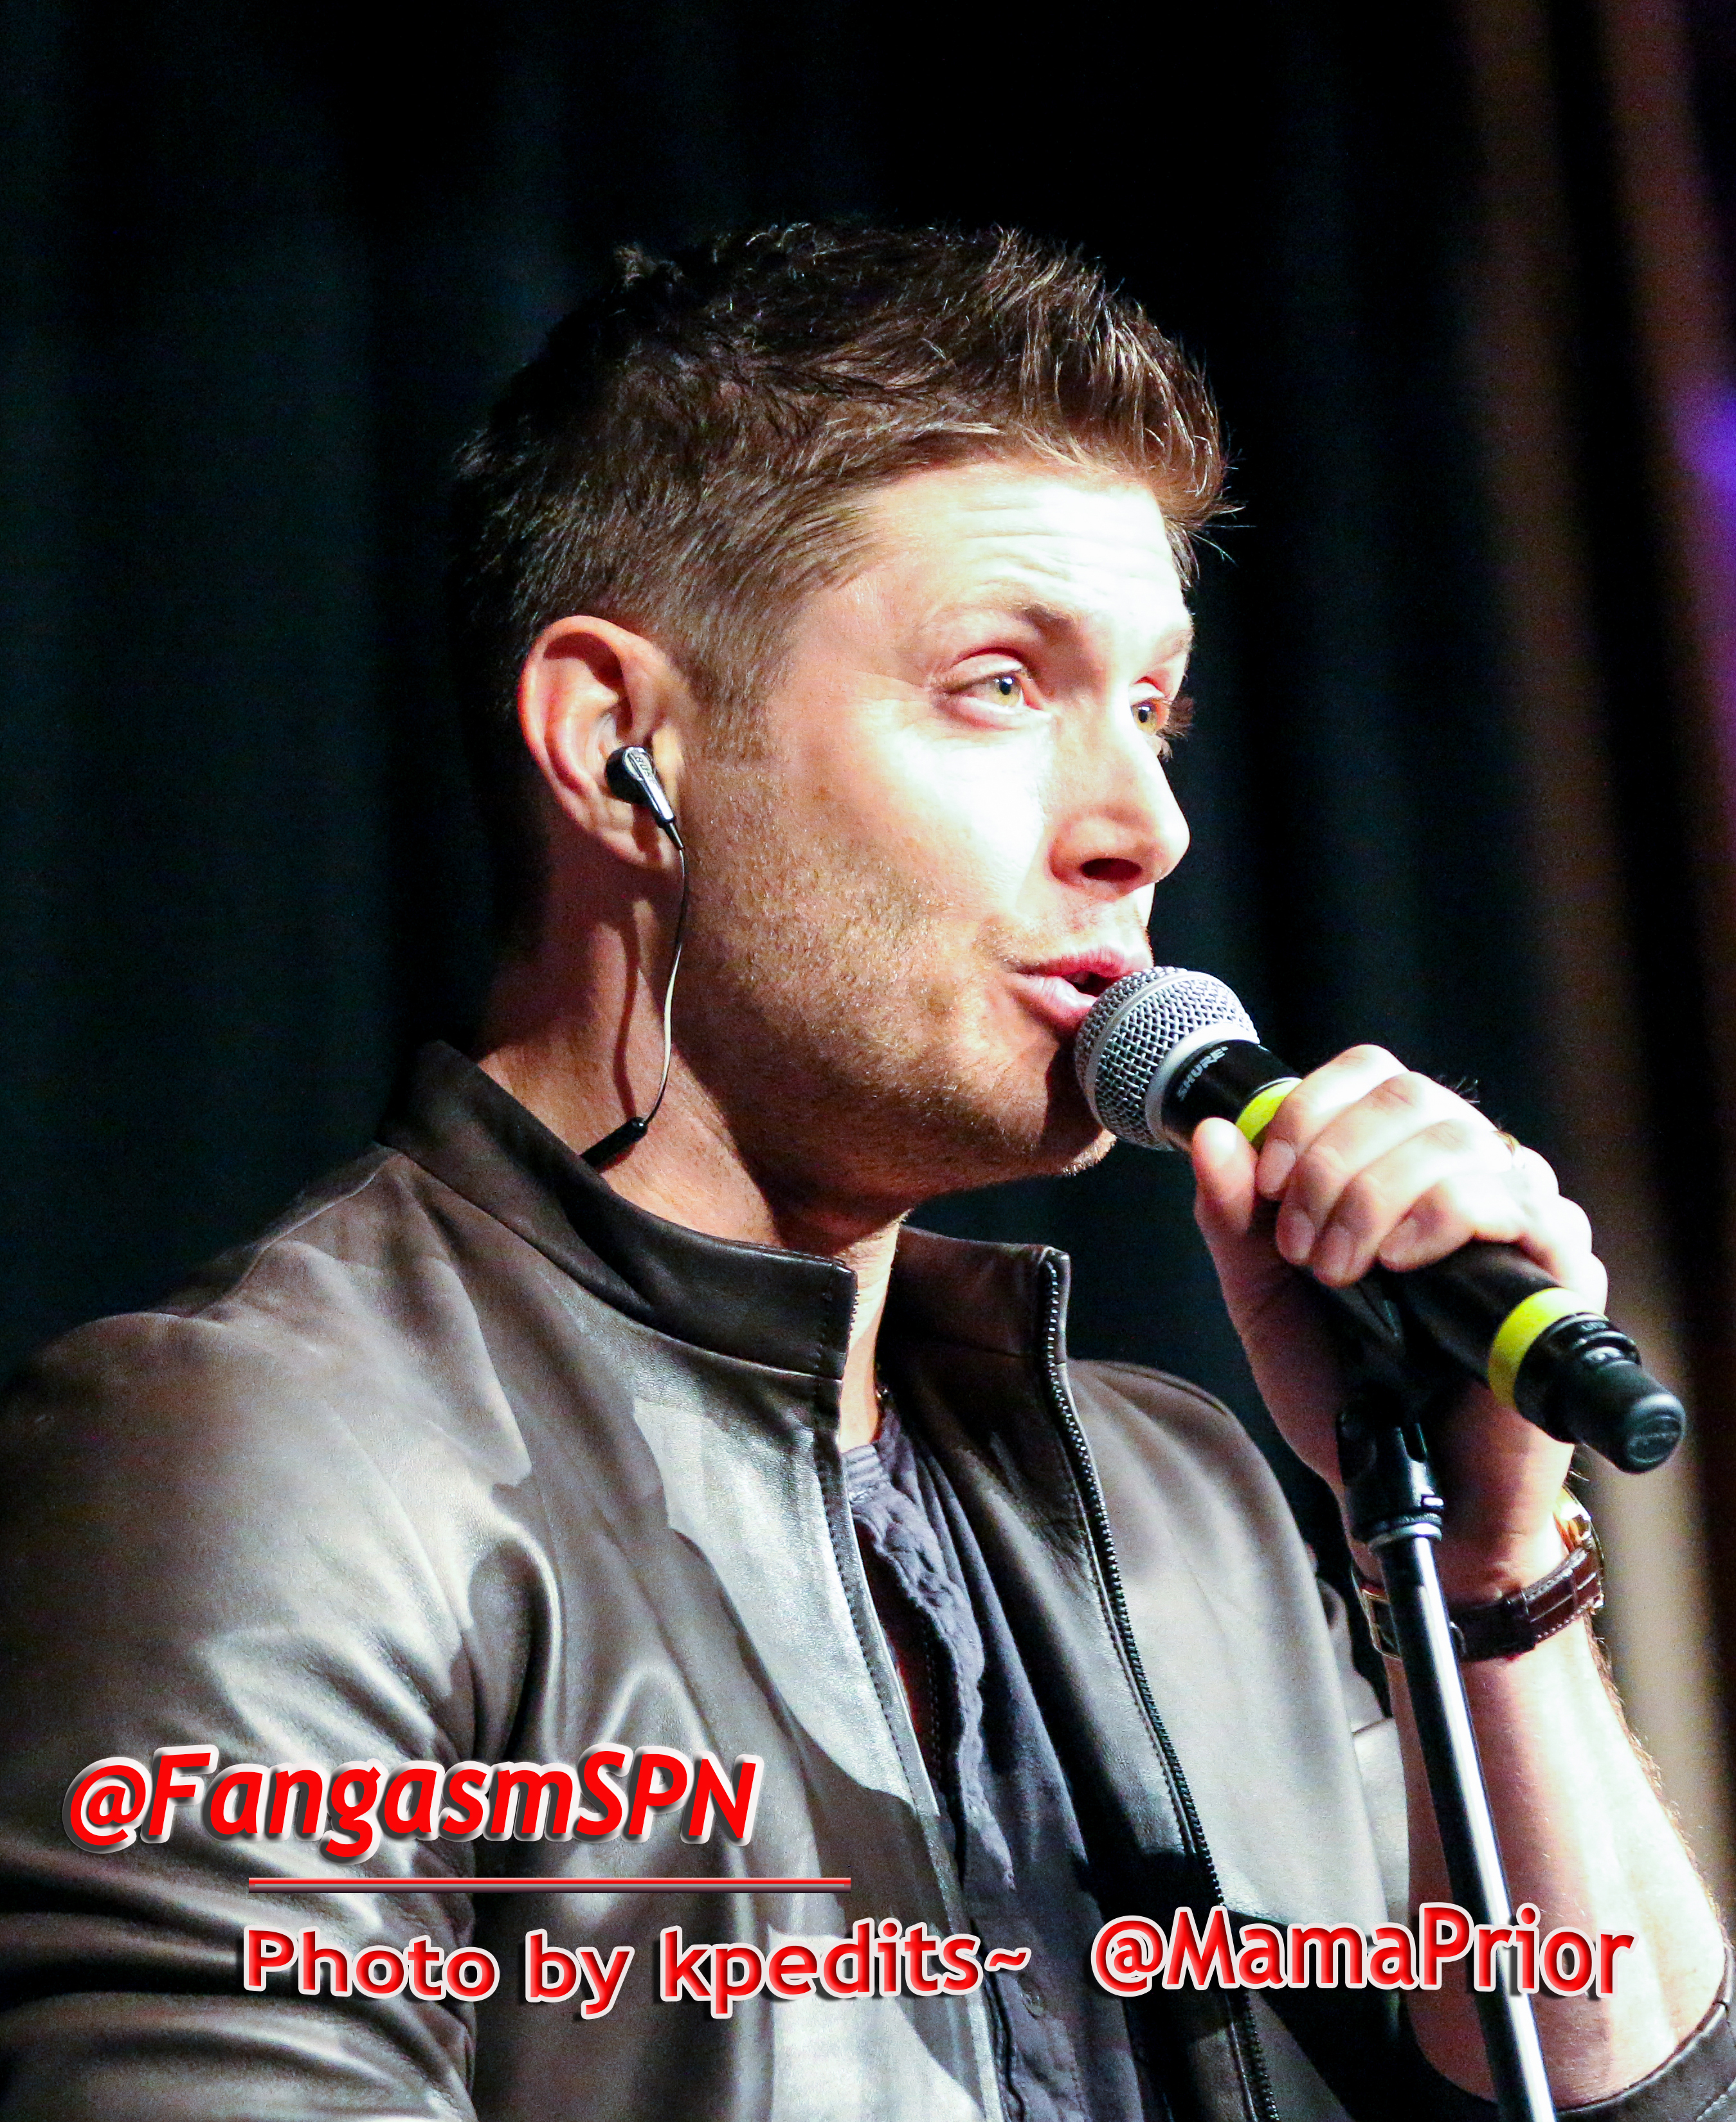 Jensen Ackles Meet And Greet From Nashcon The Evolution Of A